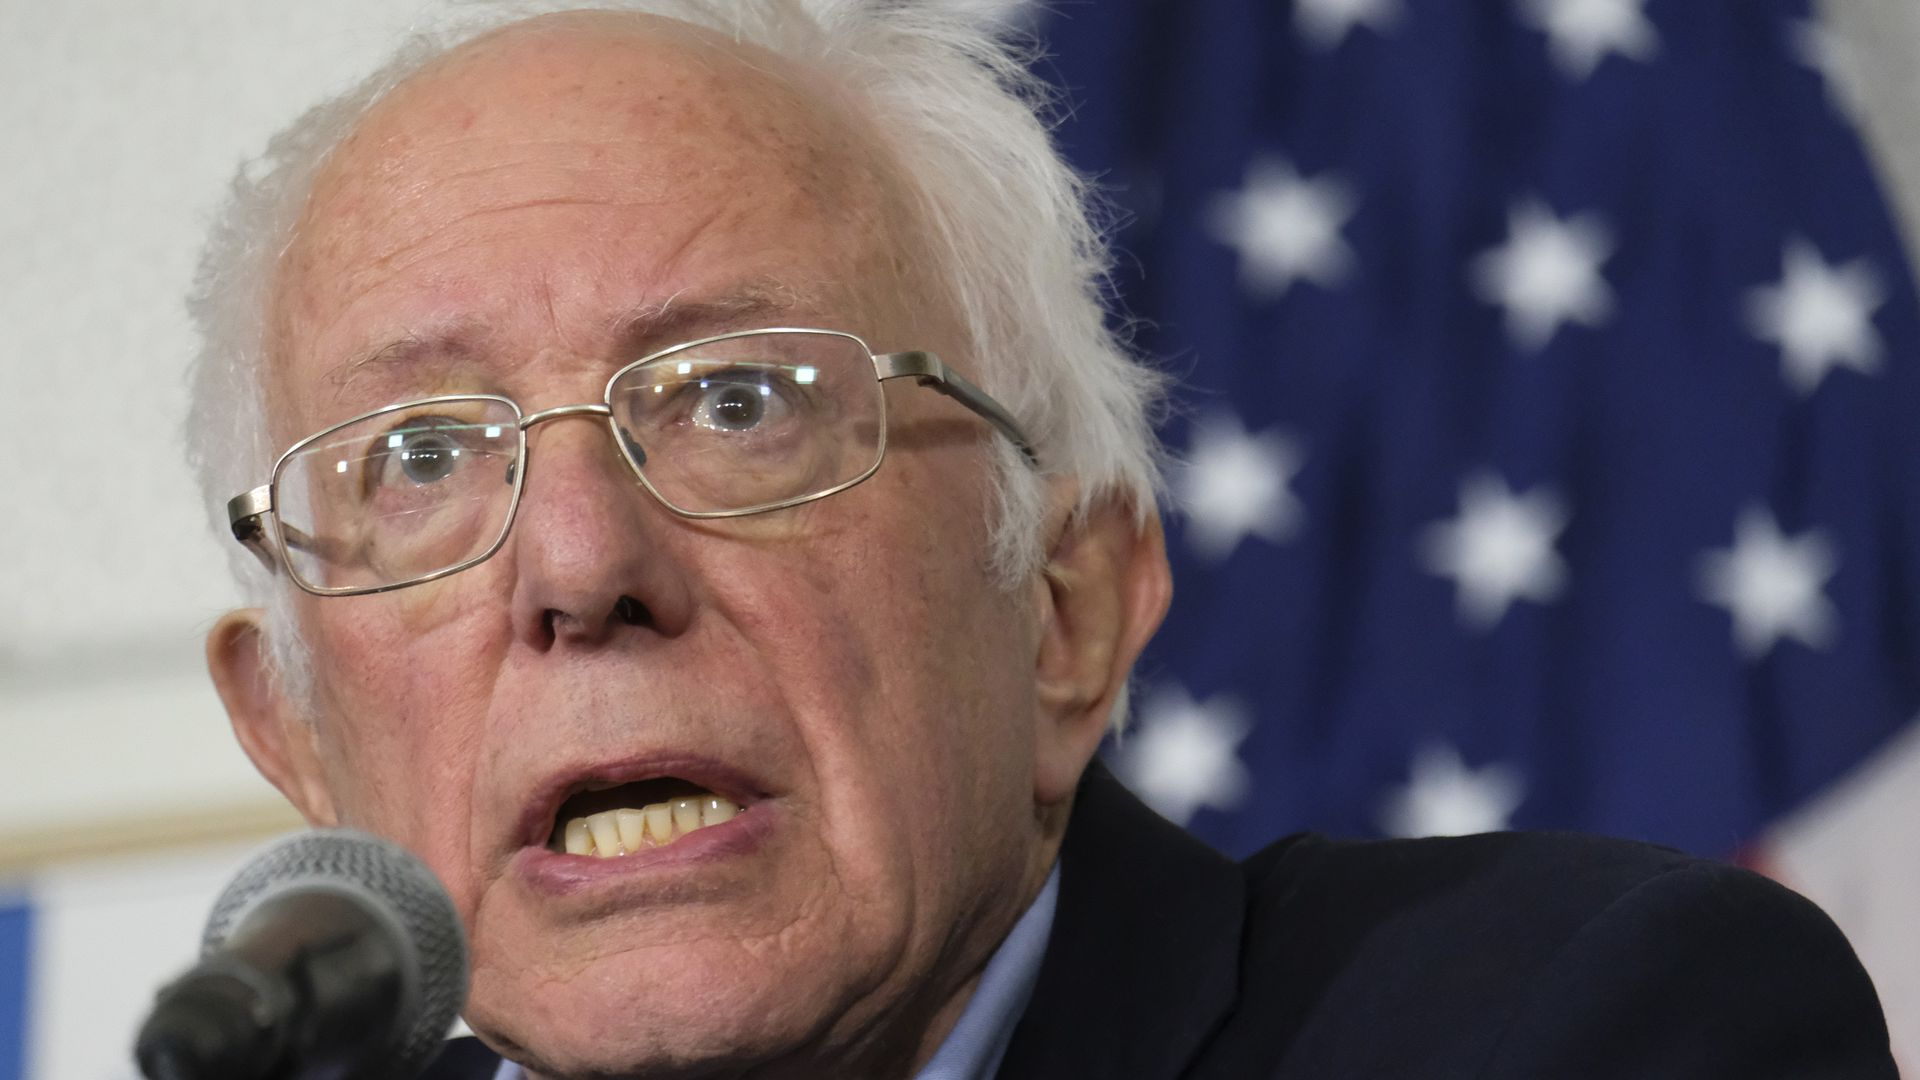 In this image, Bernie Sanders speaks into a microphone.